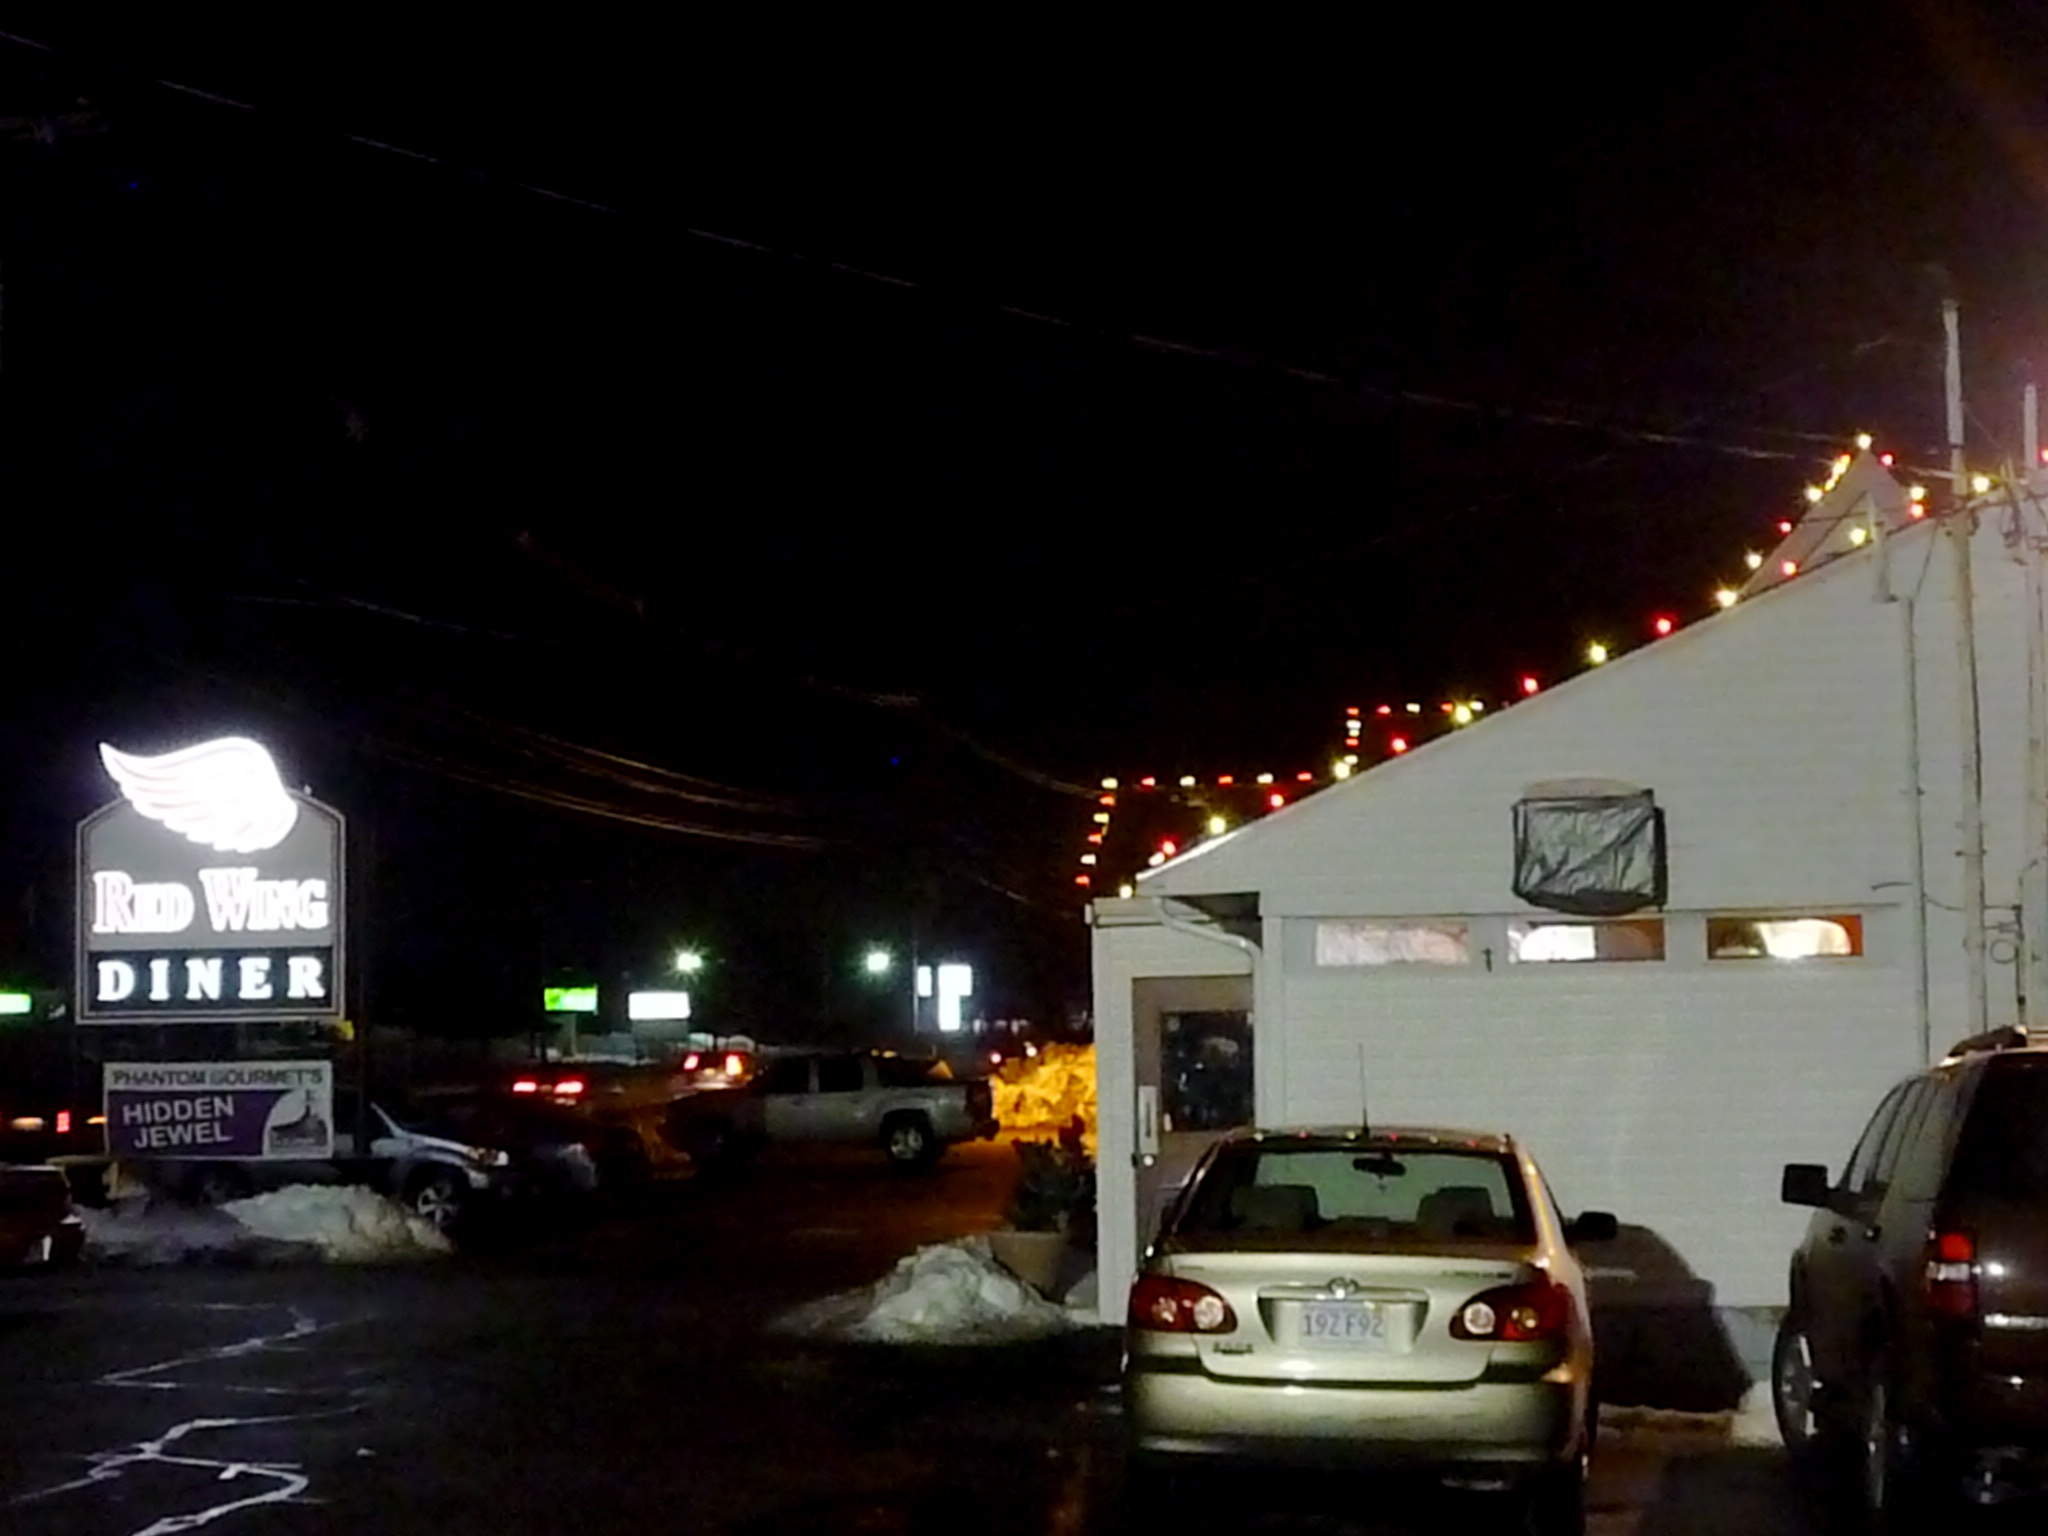 Red Wing Diner: Cheap Dining Pick Near Gillette Stadium, Foxboro, Mass.